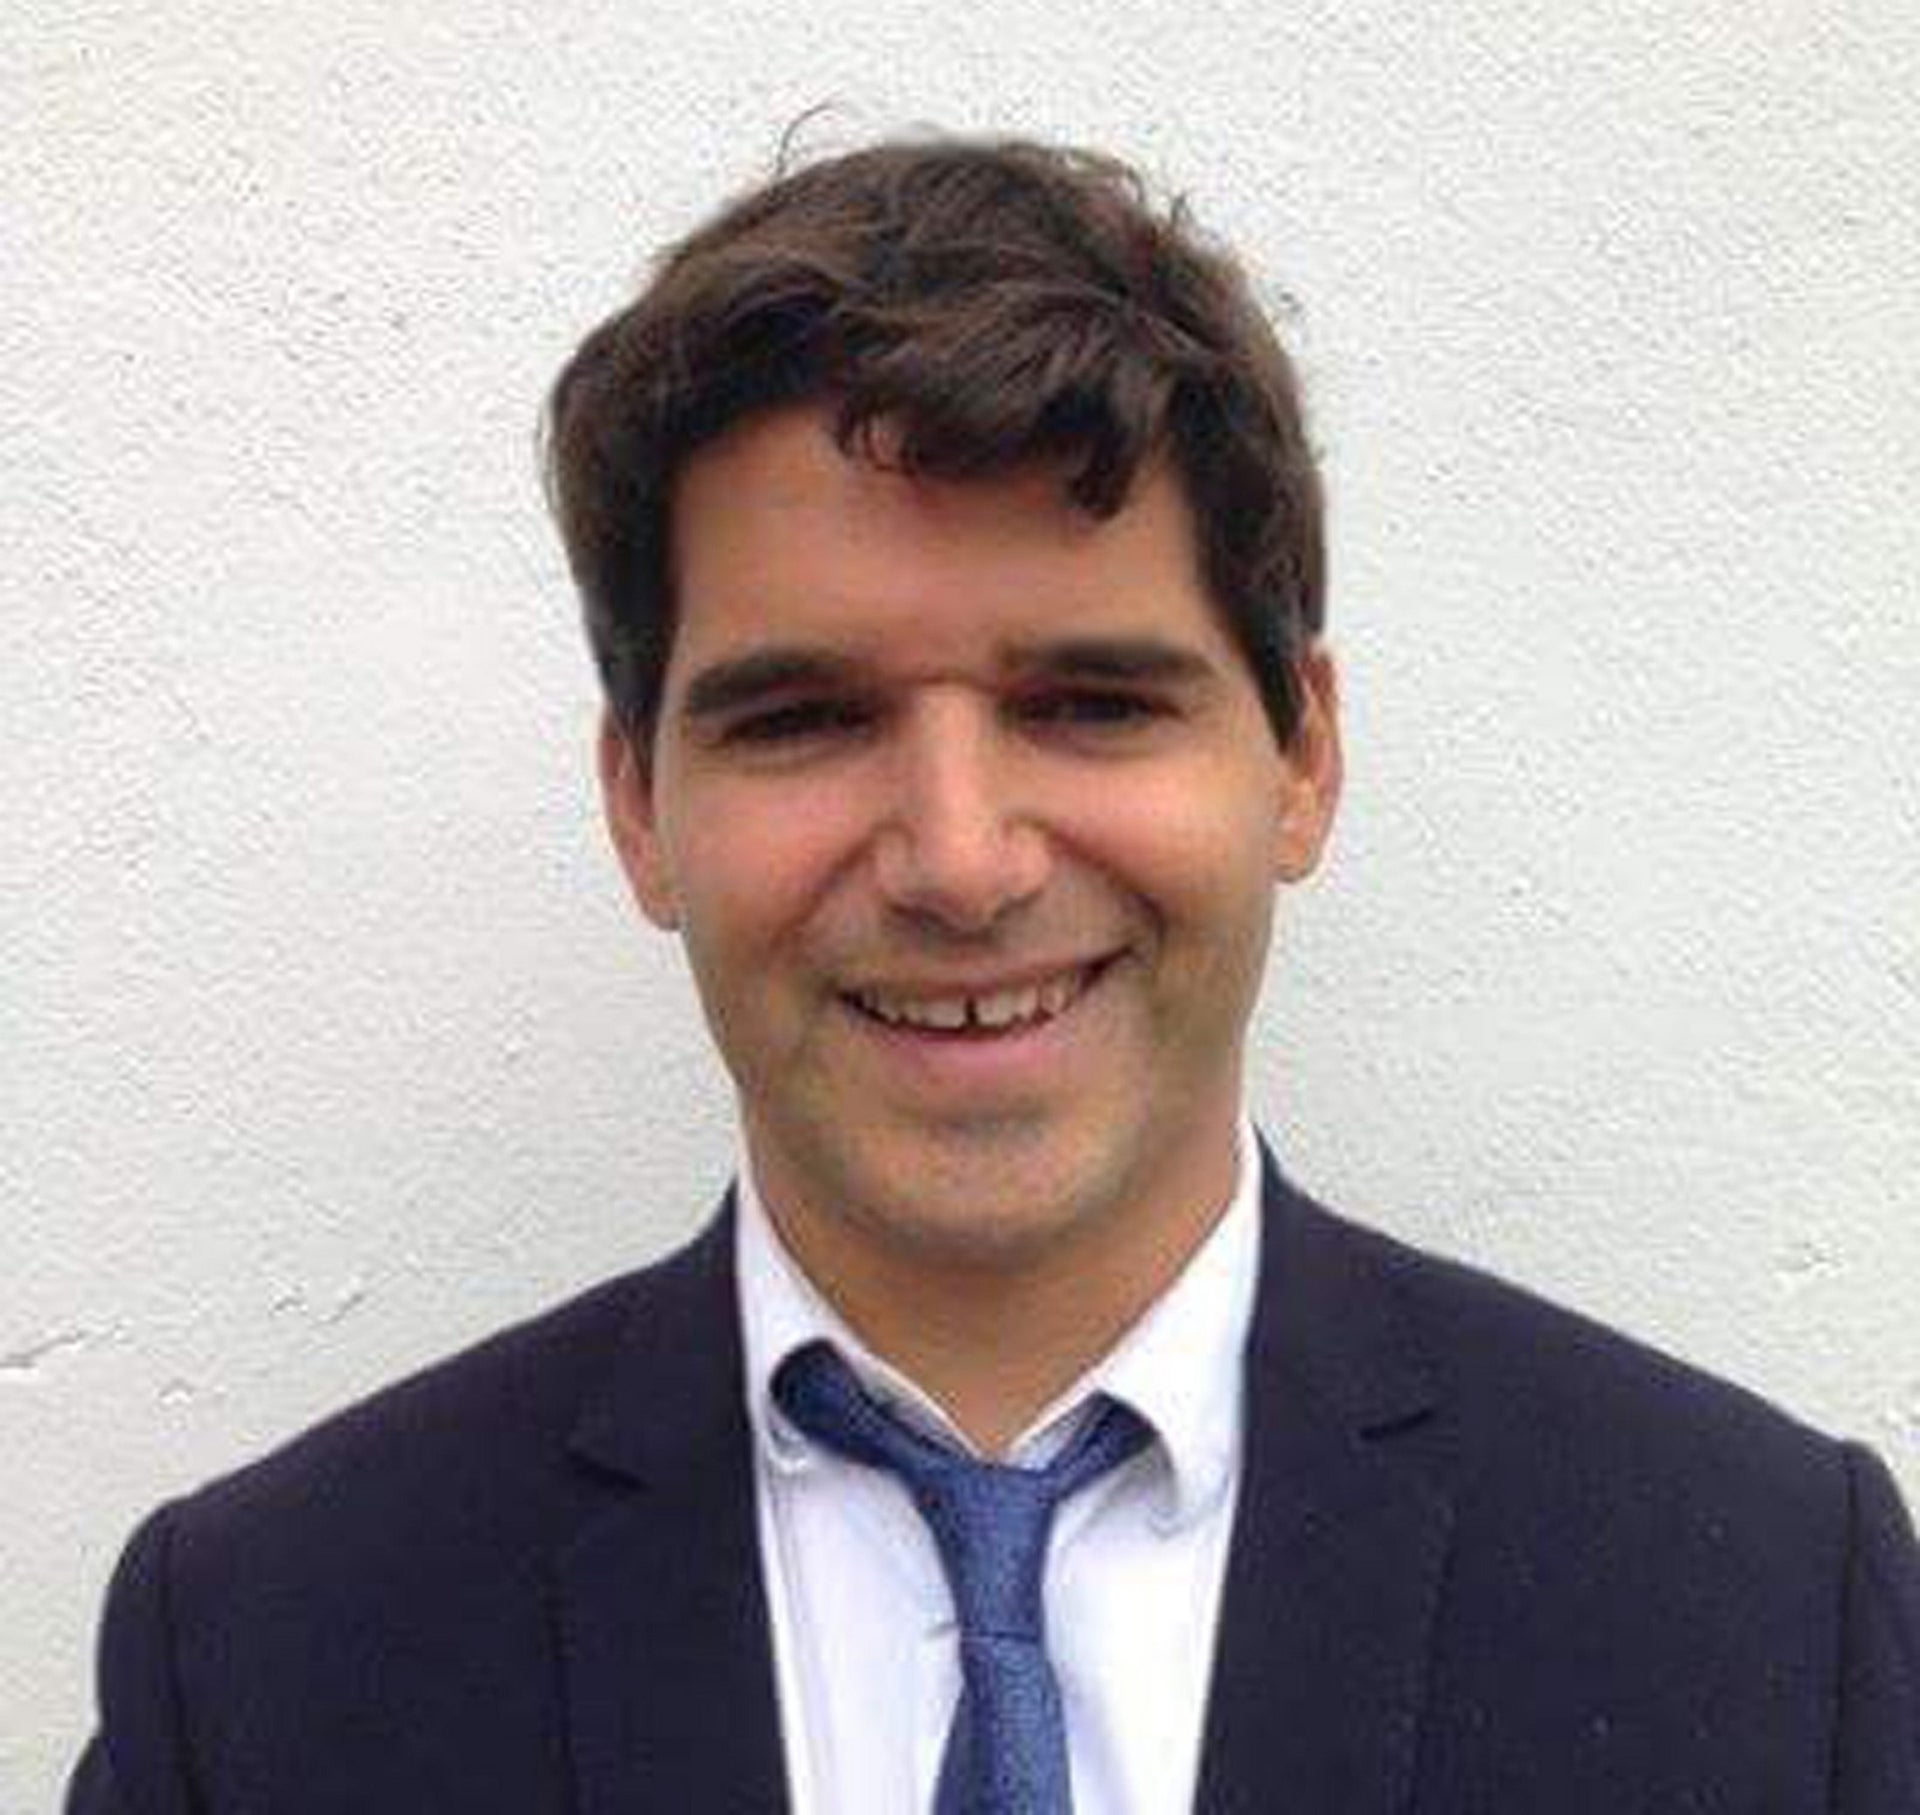 Ignacio Echeverria. The 39-year-old volunteer who lived in London and was murdered in the London Bridge terror attack.